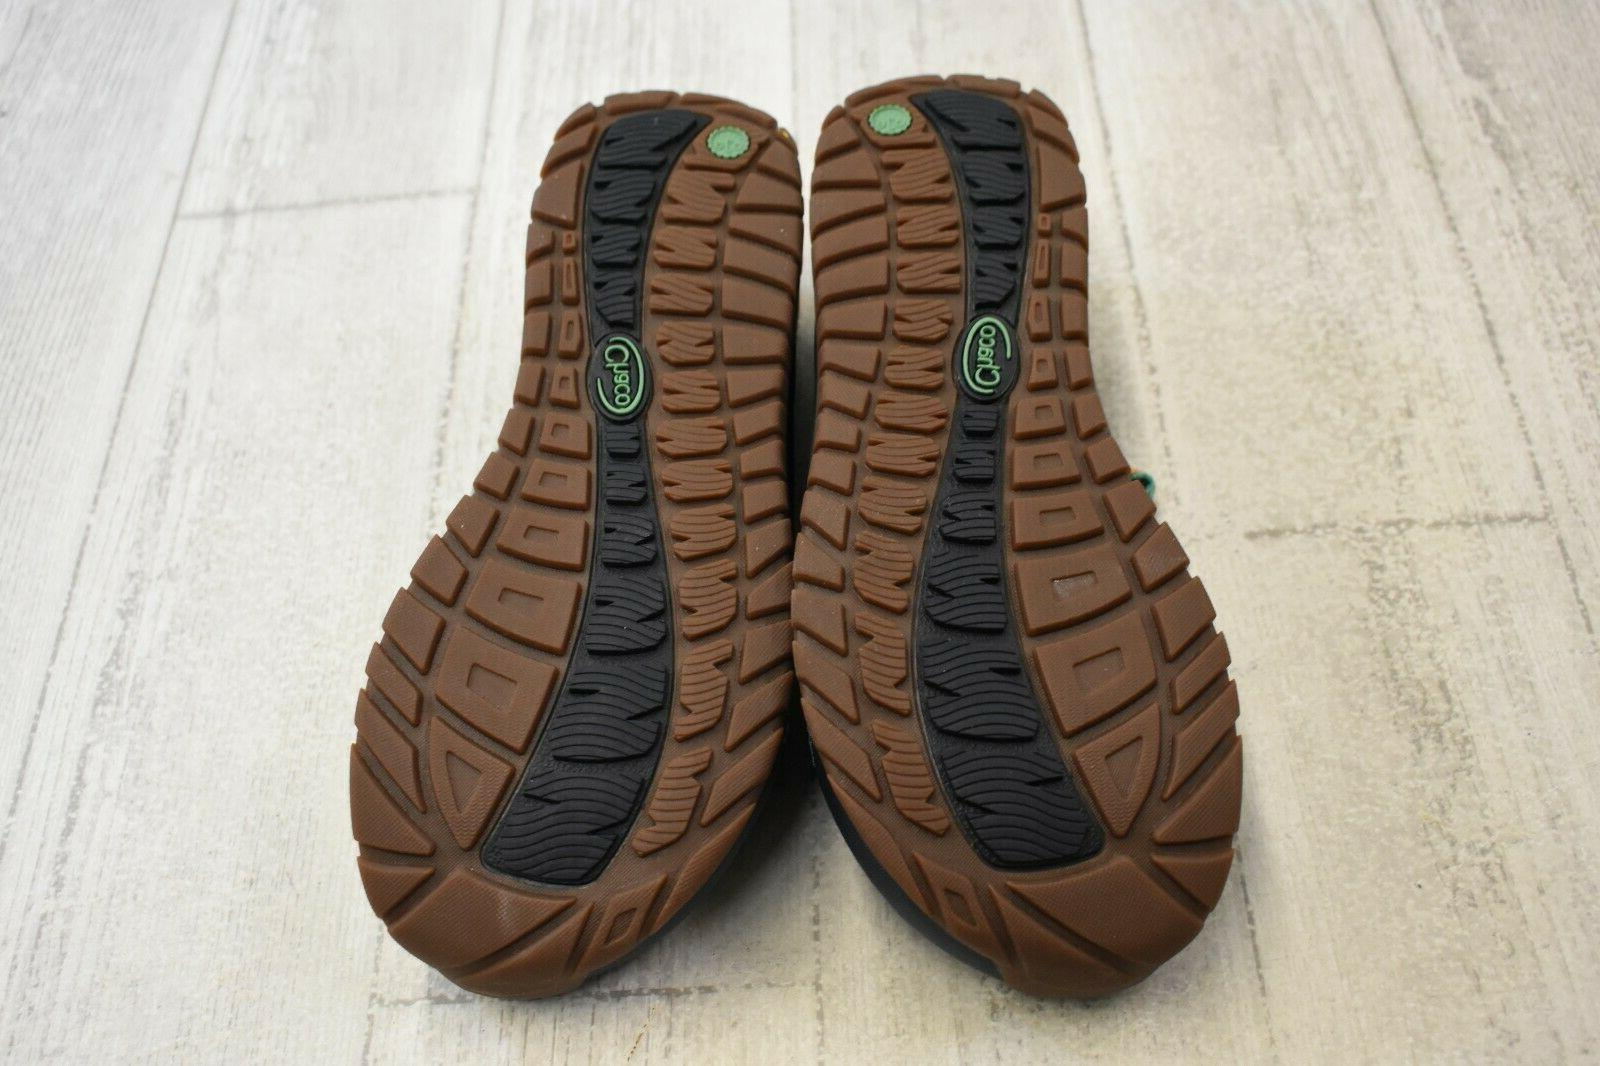 Chaco Kids Shoes Big Kid's Shoe Eclipse